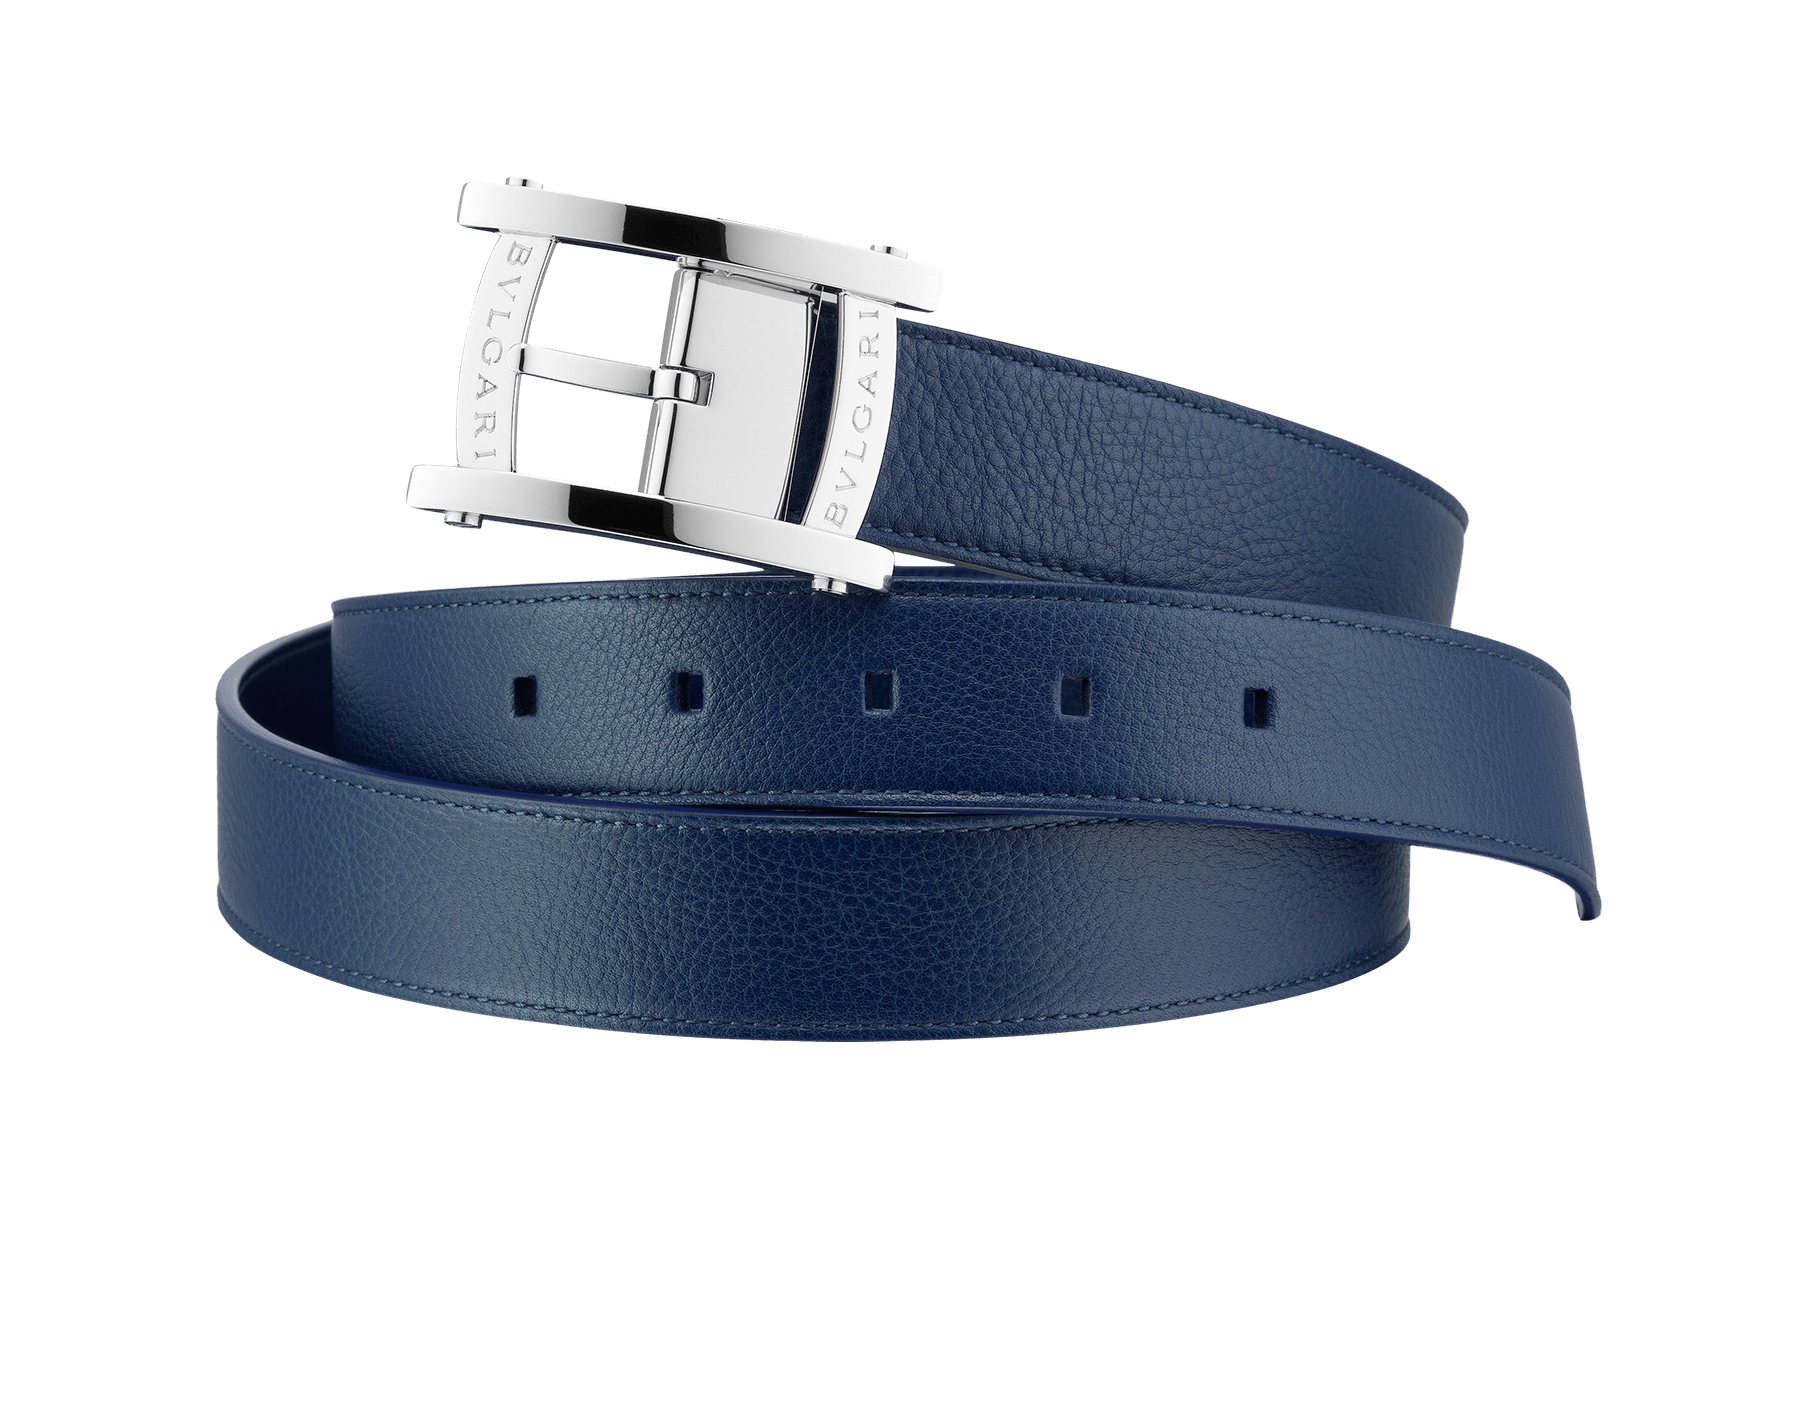 Reversible man belt in denim sapphire casual grain calf leather and calf leather, with brass palladium plated hardware. Sport buckle inspired by the bezel of the Assioma man watch. 39963 image 1